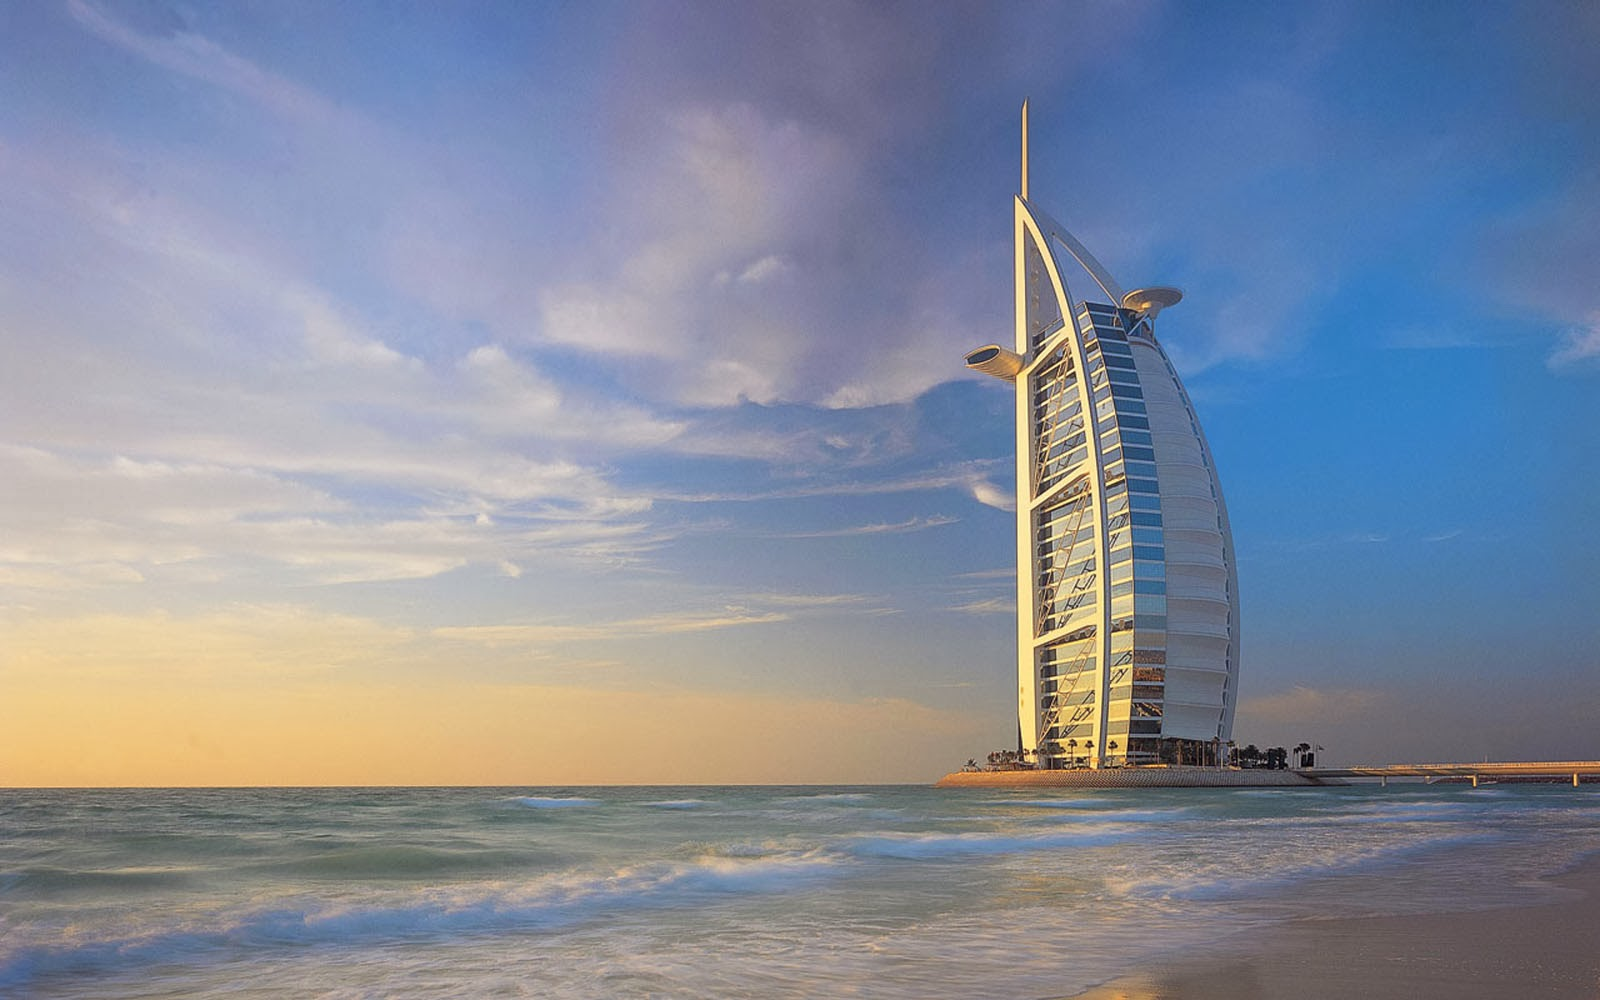 Wallpapers burj al arab hotel wallpapers for Burj al arab